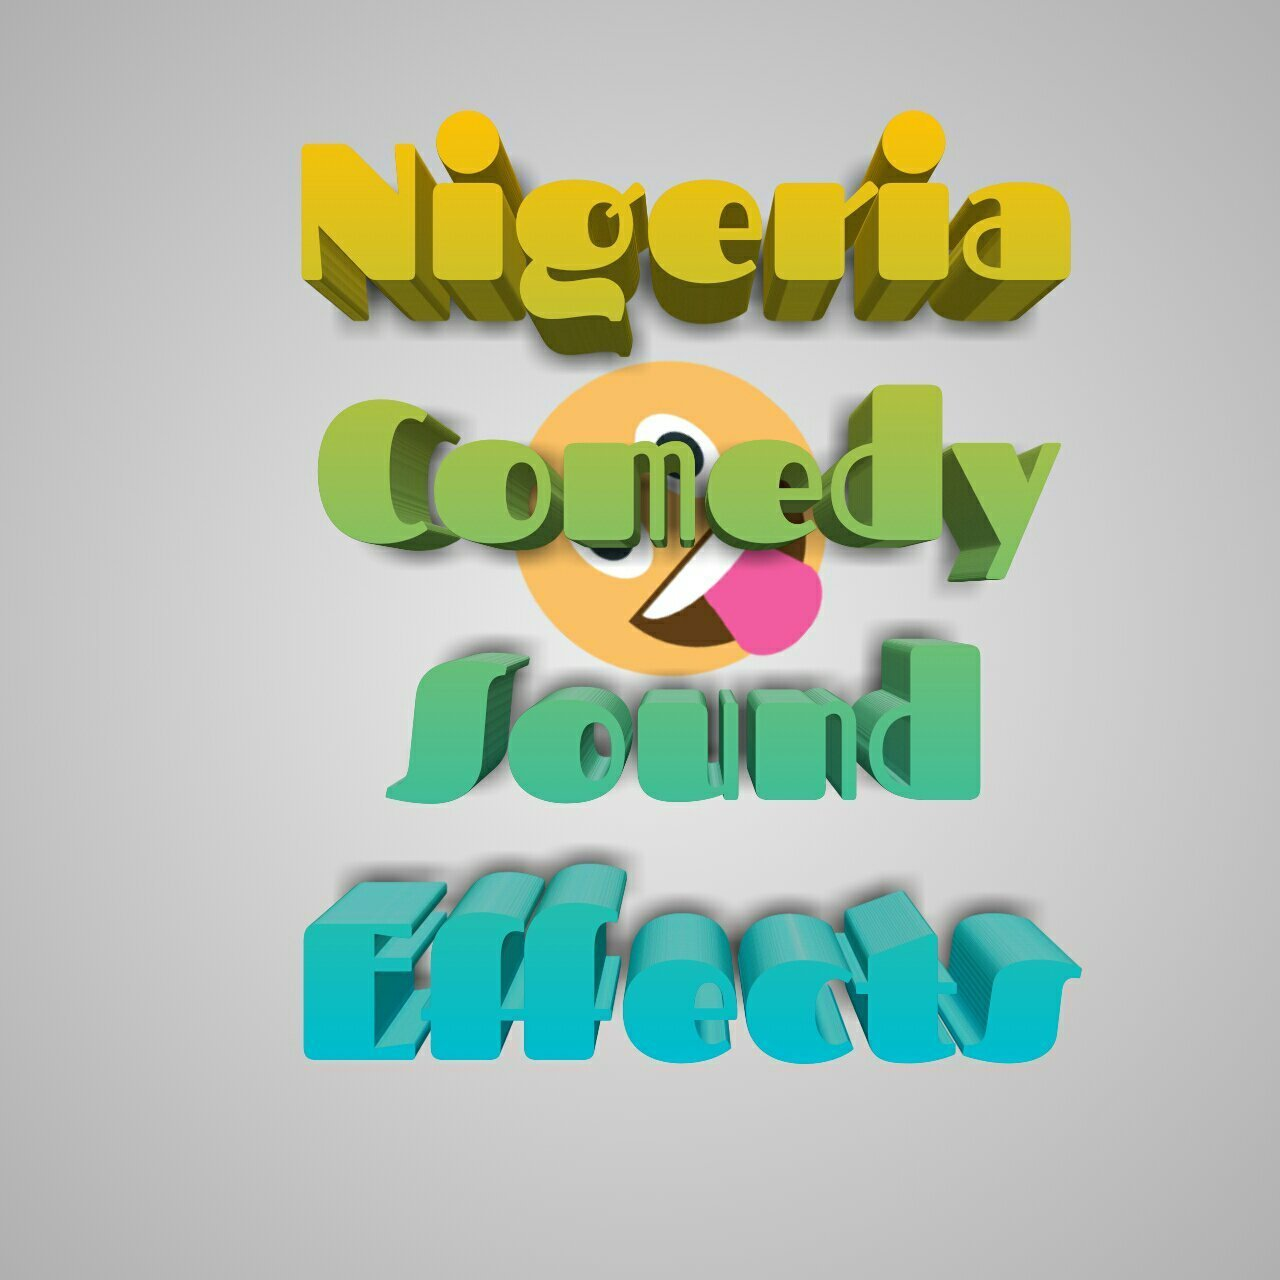 Nigeria Comedy Sound Effects Mp3 Zip Seriezloaded